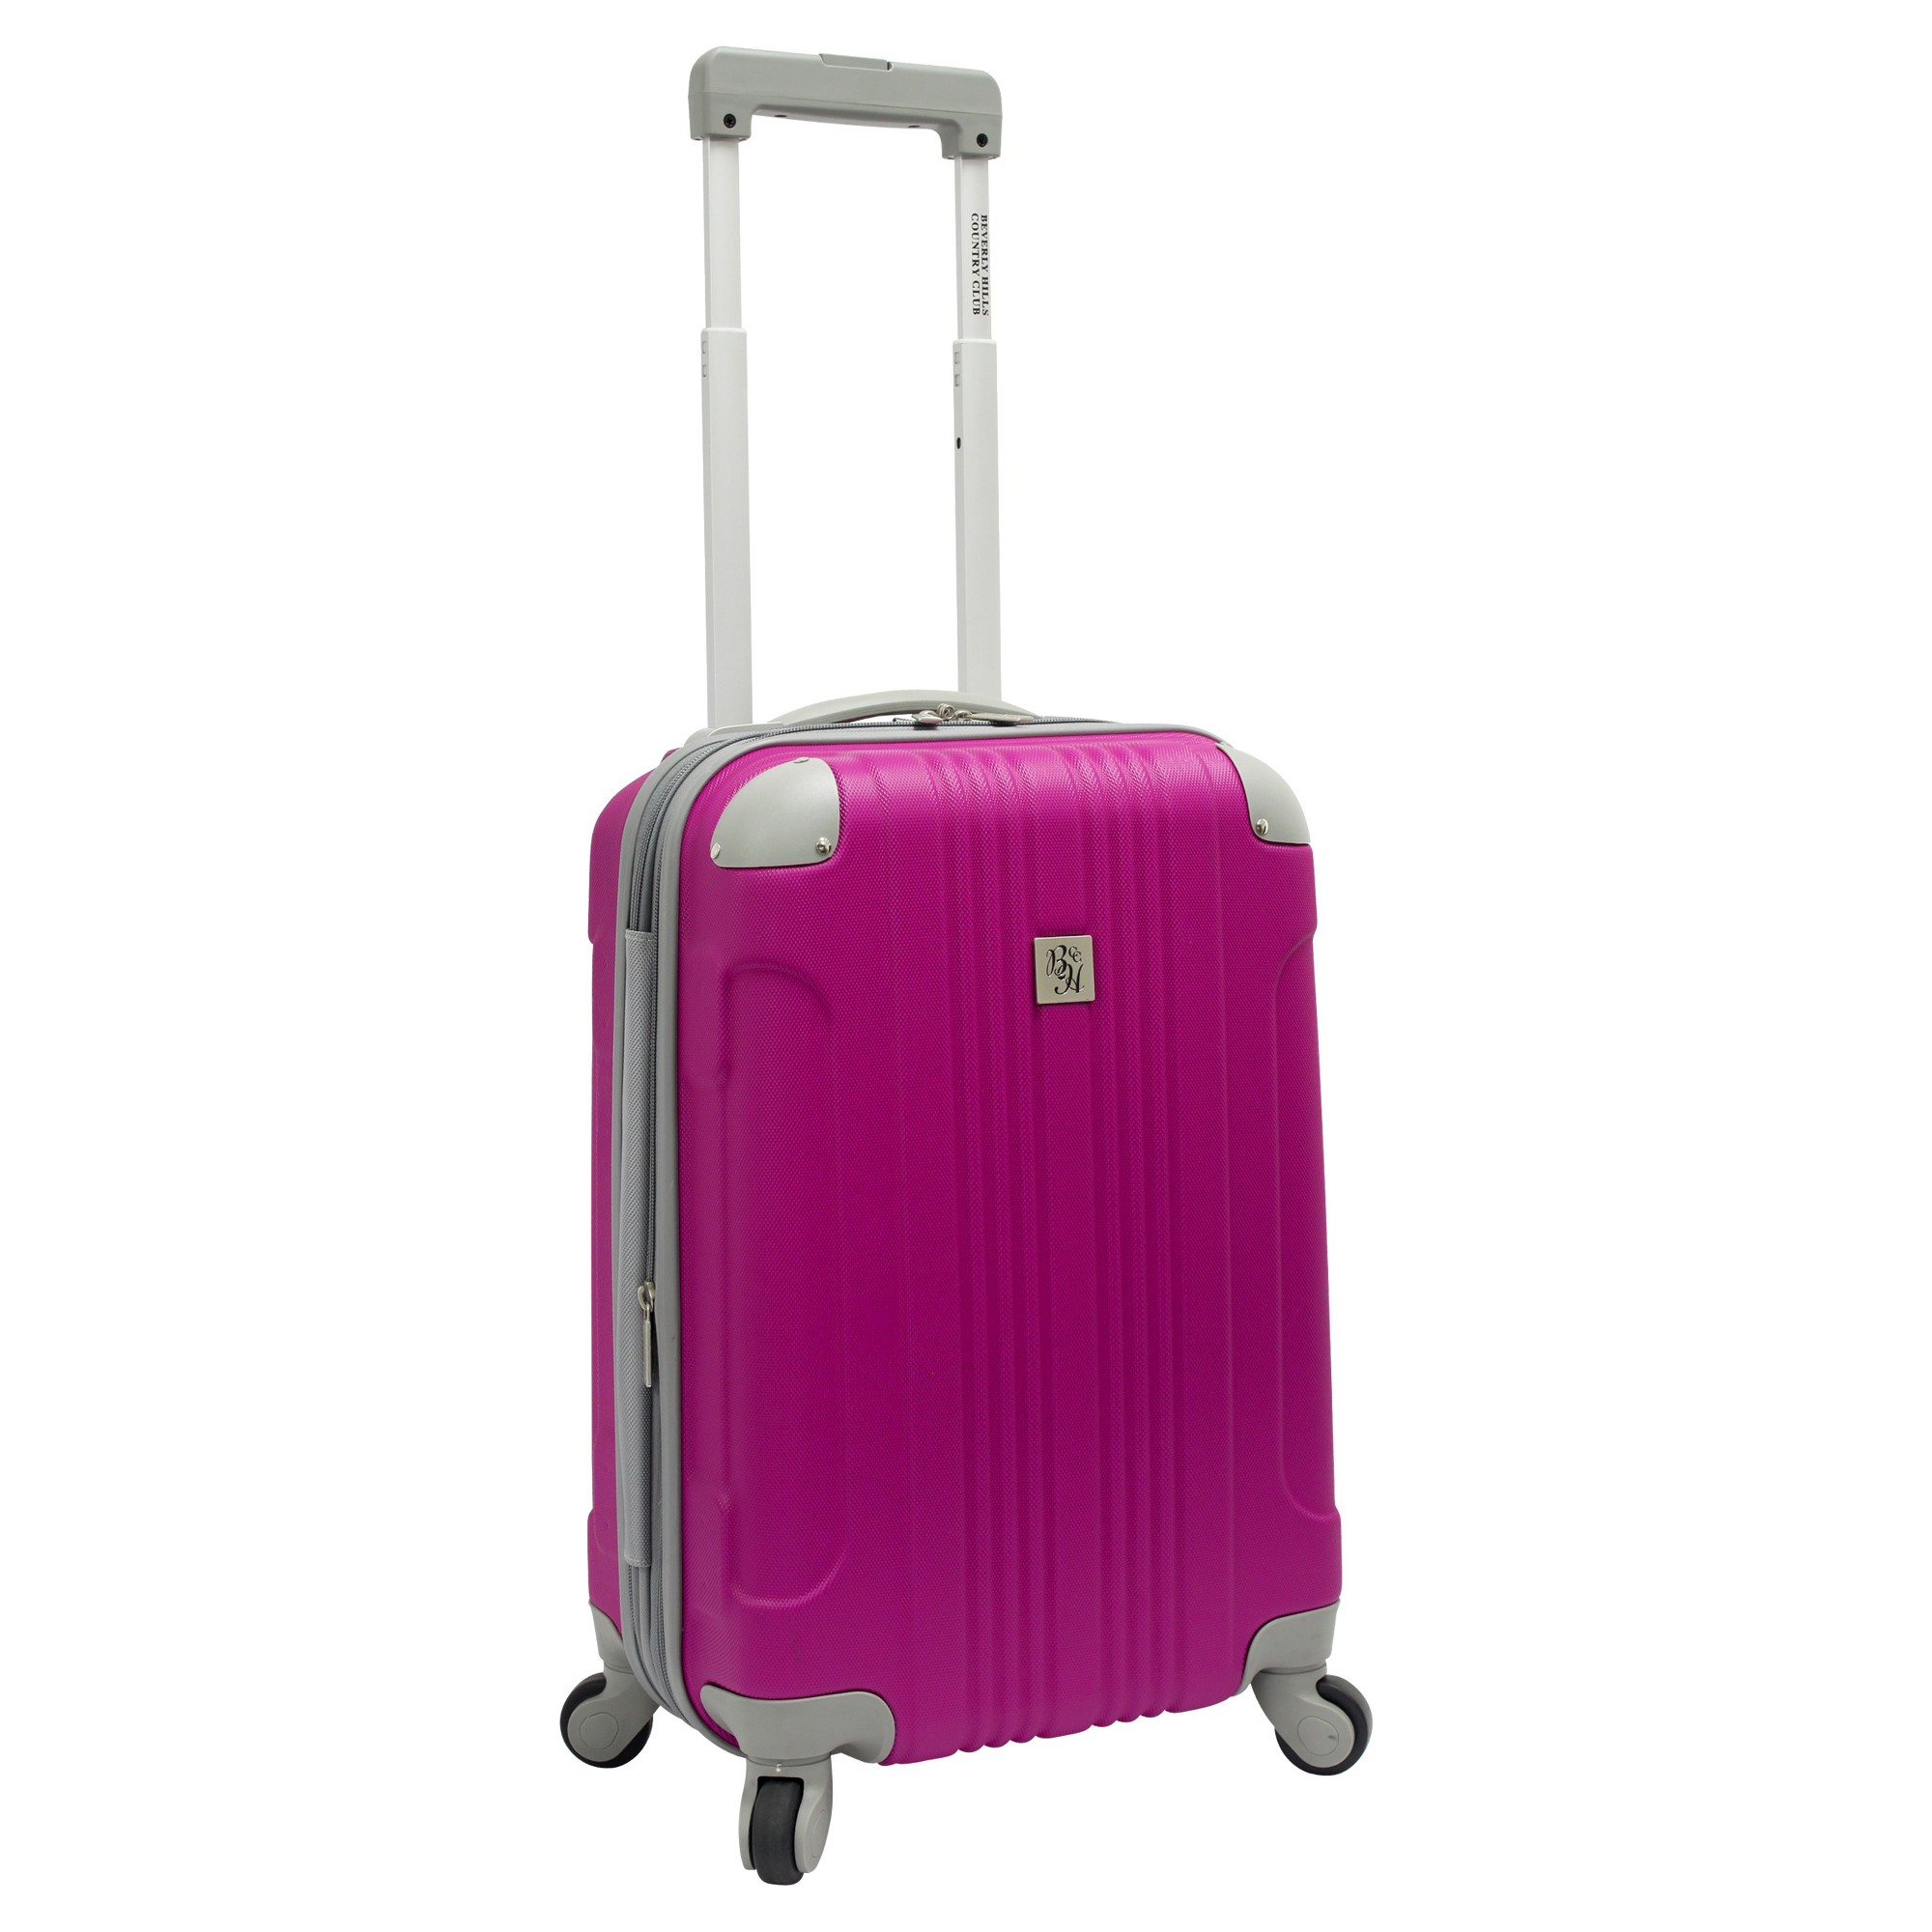 Beverly Hills Country Club Newport 21 Hardside Spinner Suitcase - Magenta (Pink)